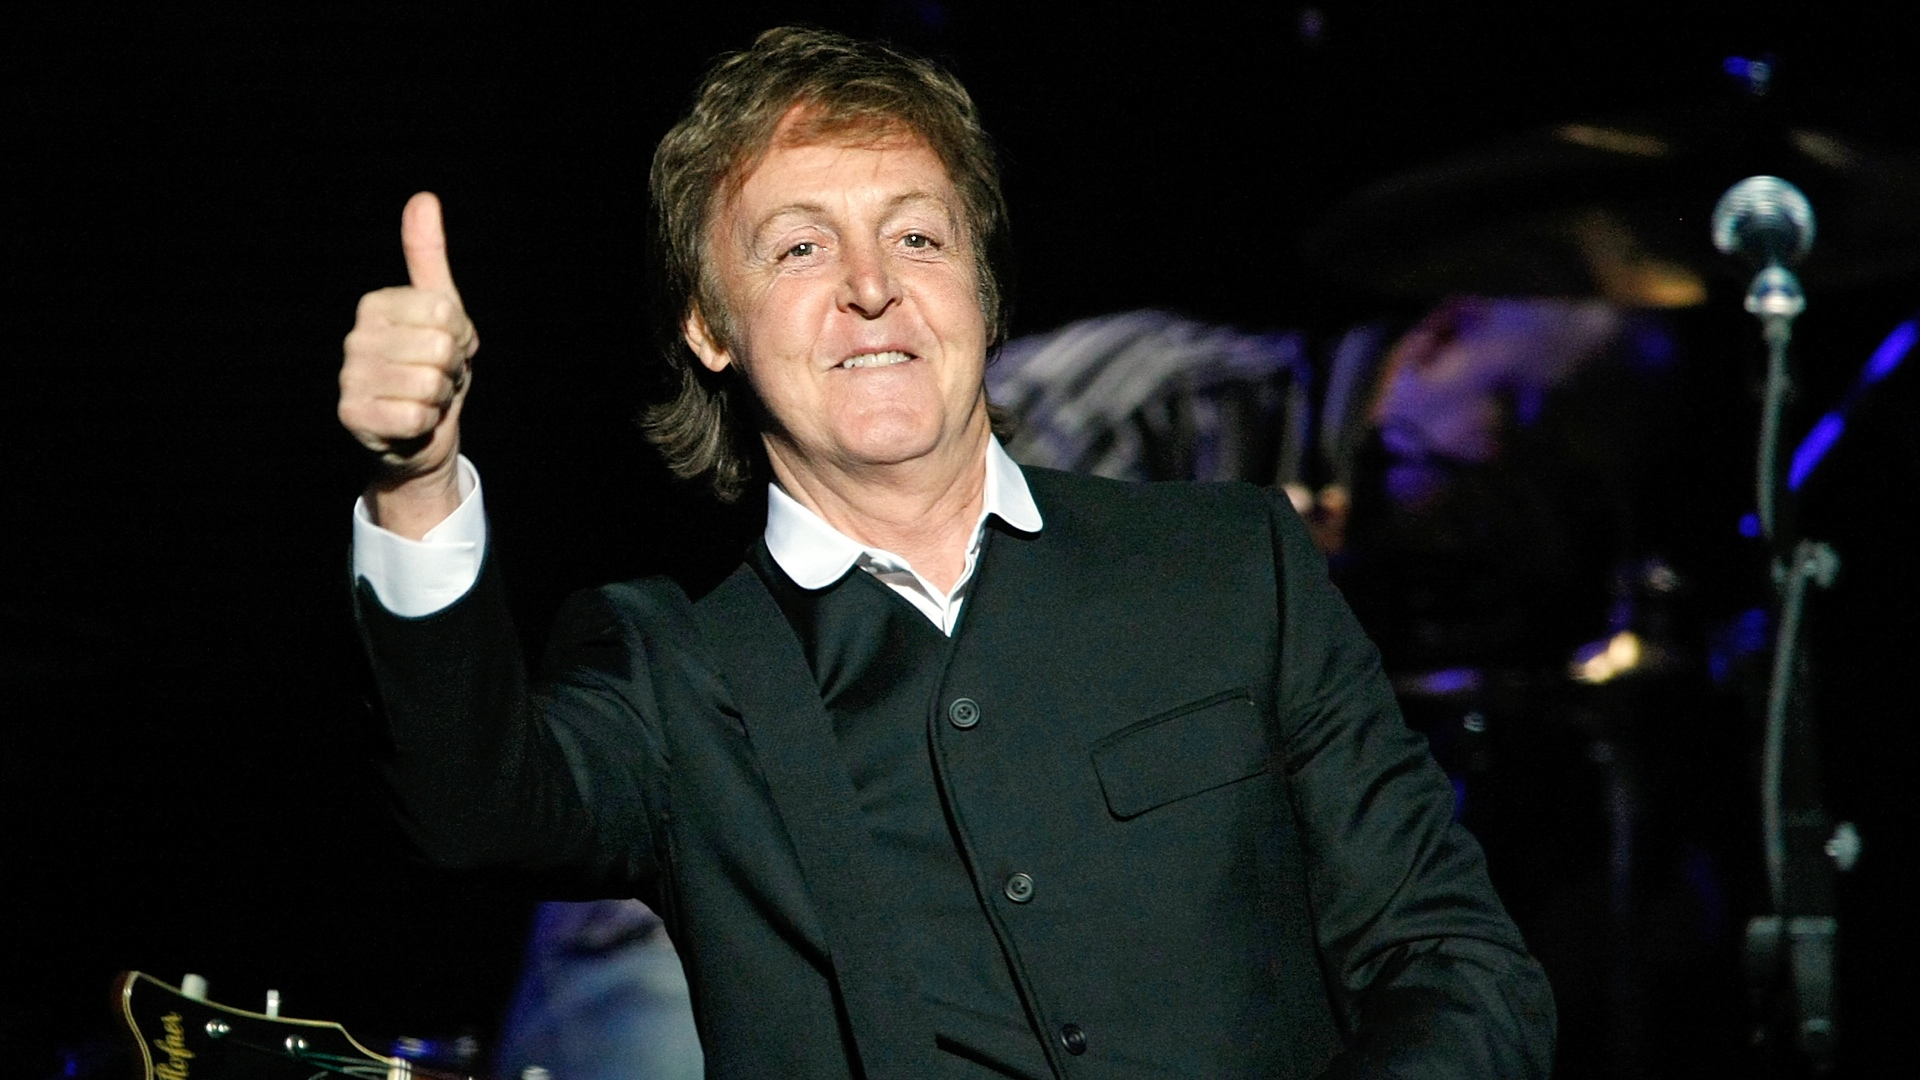 Paul McCartney Performs At The Joint At The Hard Rock